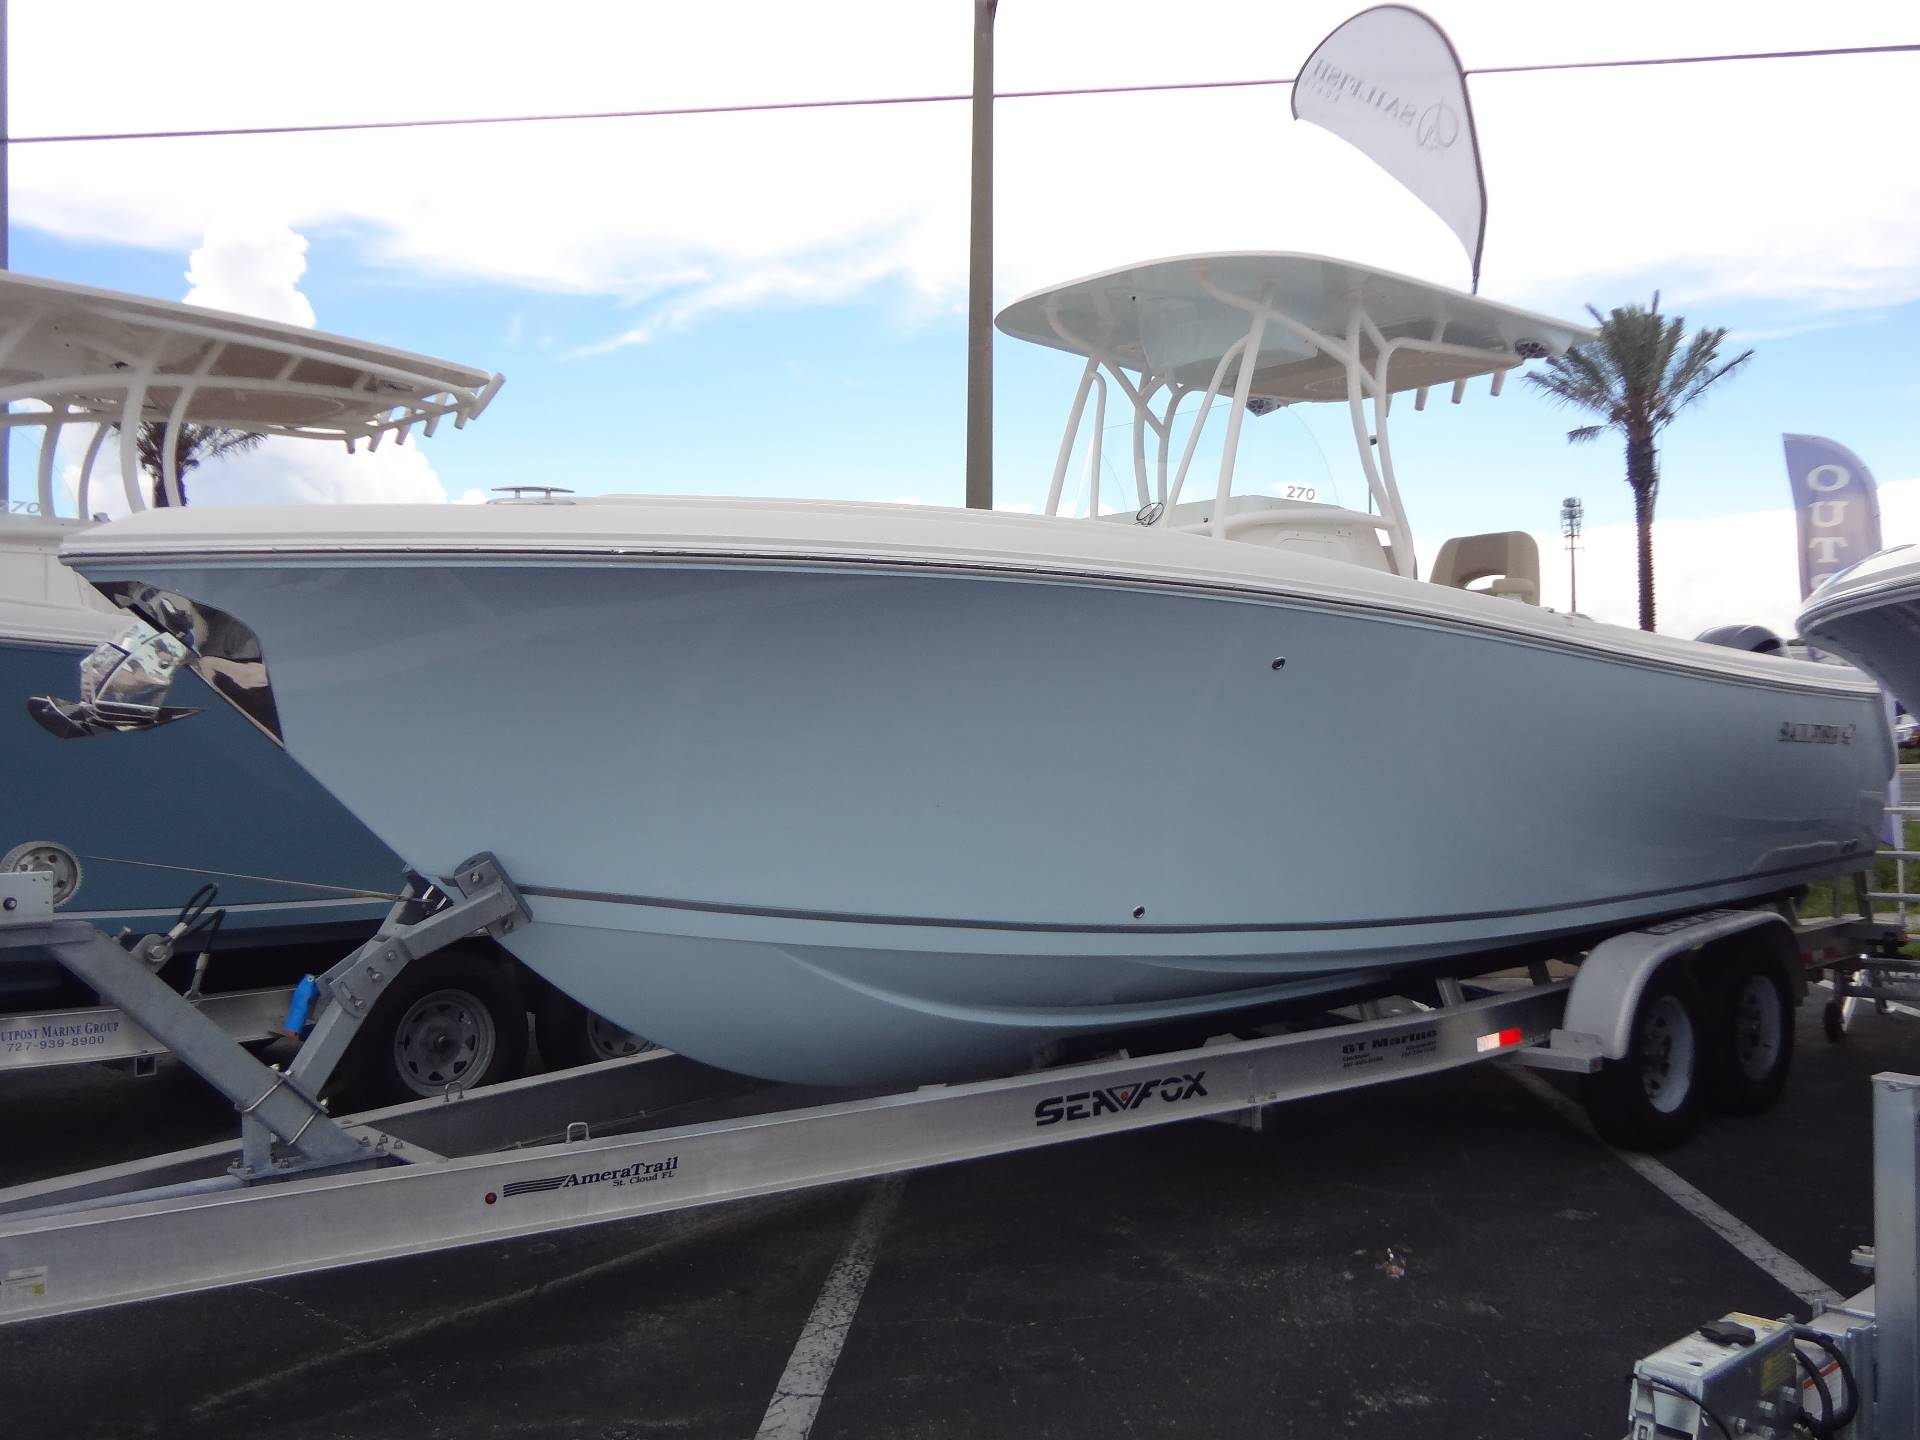 2020 Sailfish 270 CC in Holiday, Florida - Photo 1